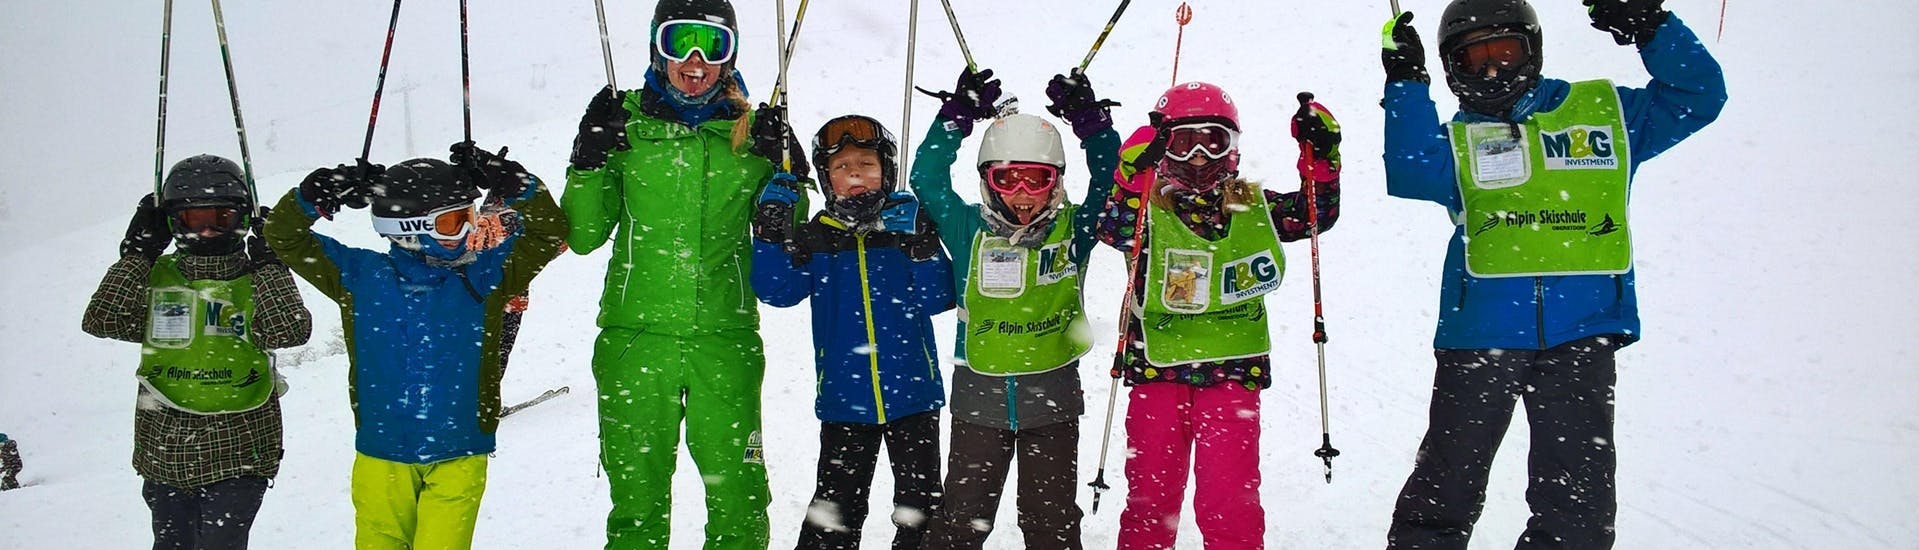 Children are having fun in the Kids Ski Lessons (7-8 years) - Beginners organised by the Alpin Skischule Oberstdorf.